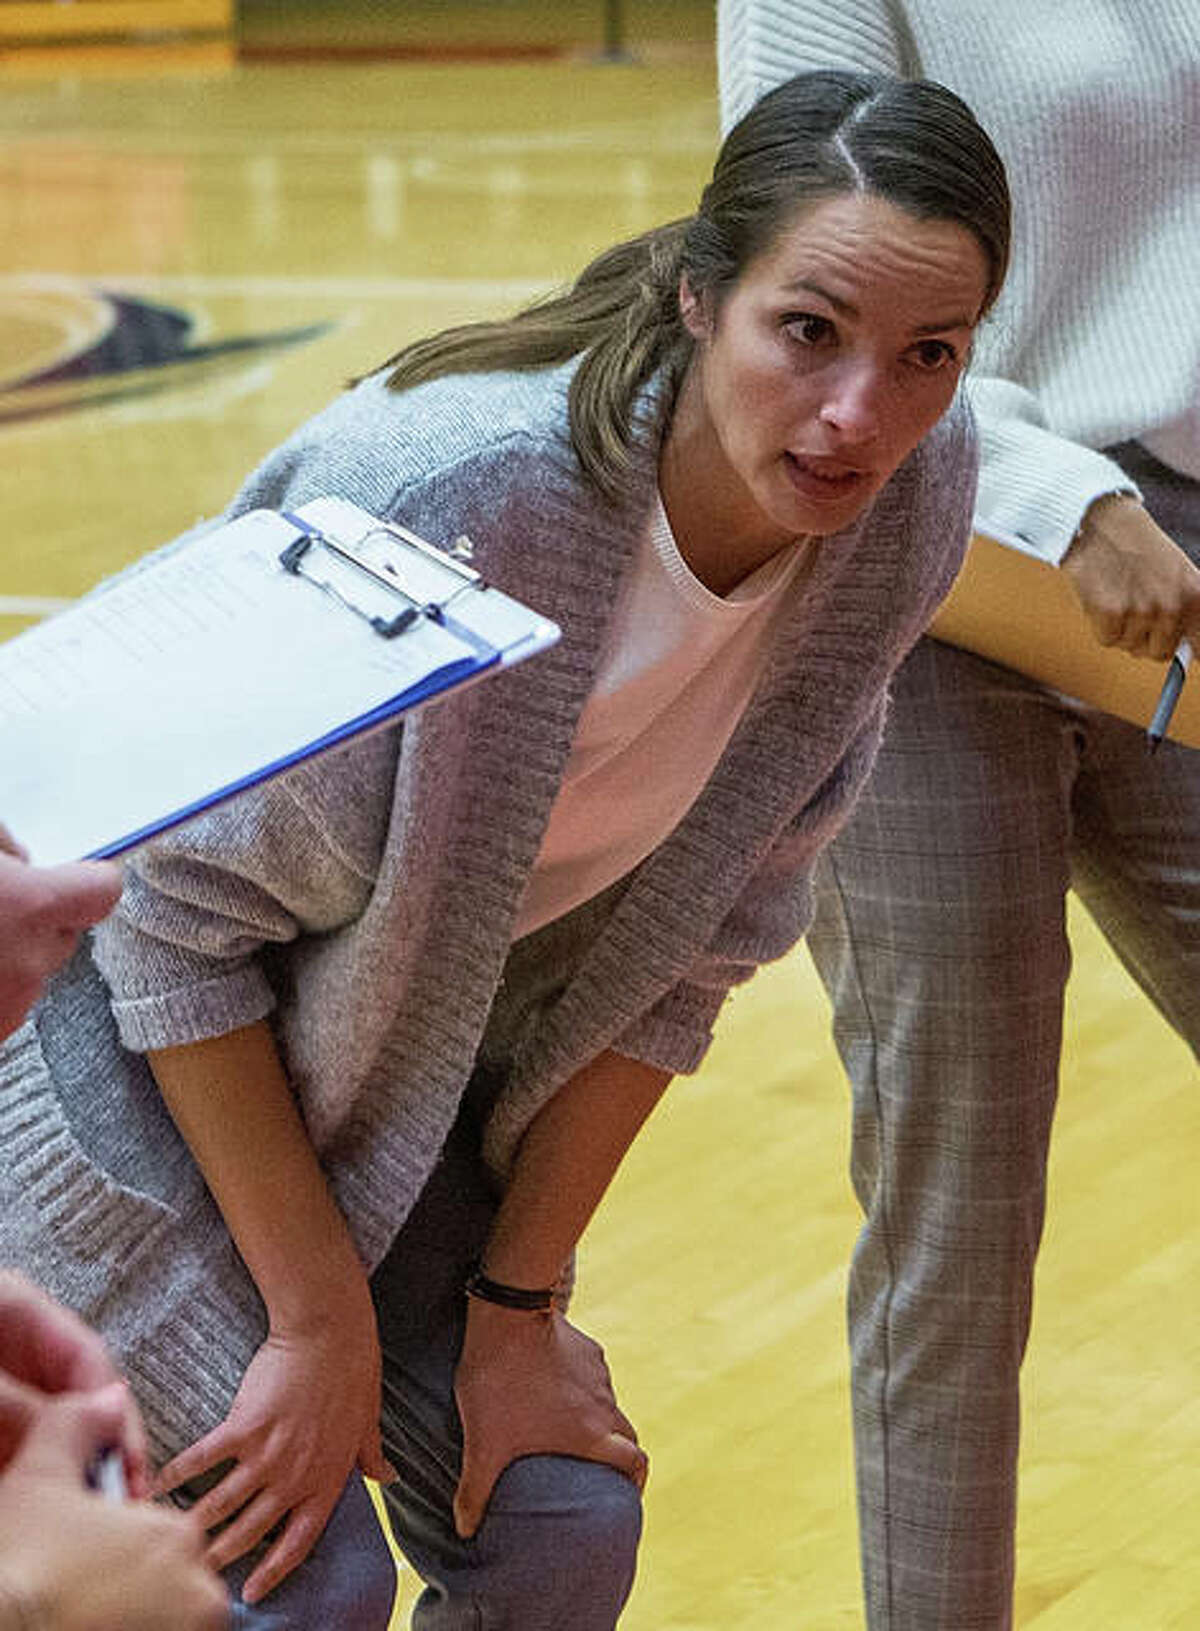 SIUE coach Kendall Paulus and her Cougars will play host to the SIU Carbondale Salukis in a preseason match Saturday at First Community Arena. Start time is set for 2 p.m.